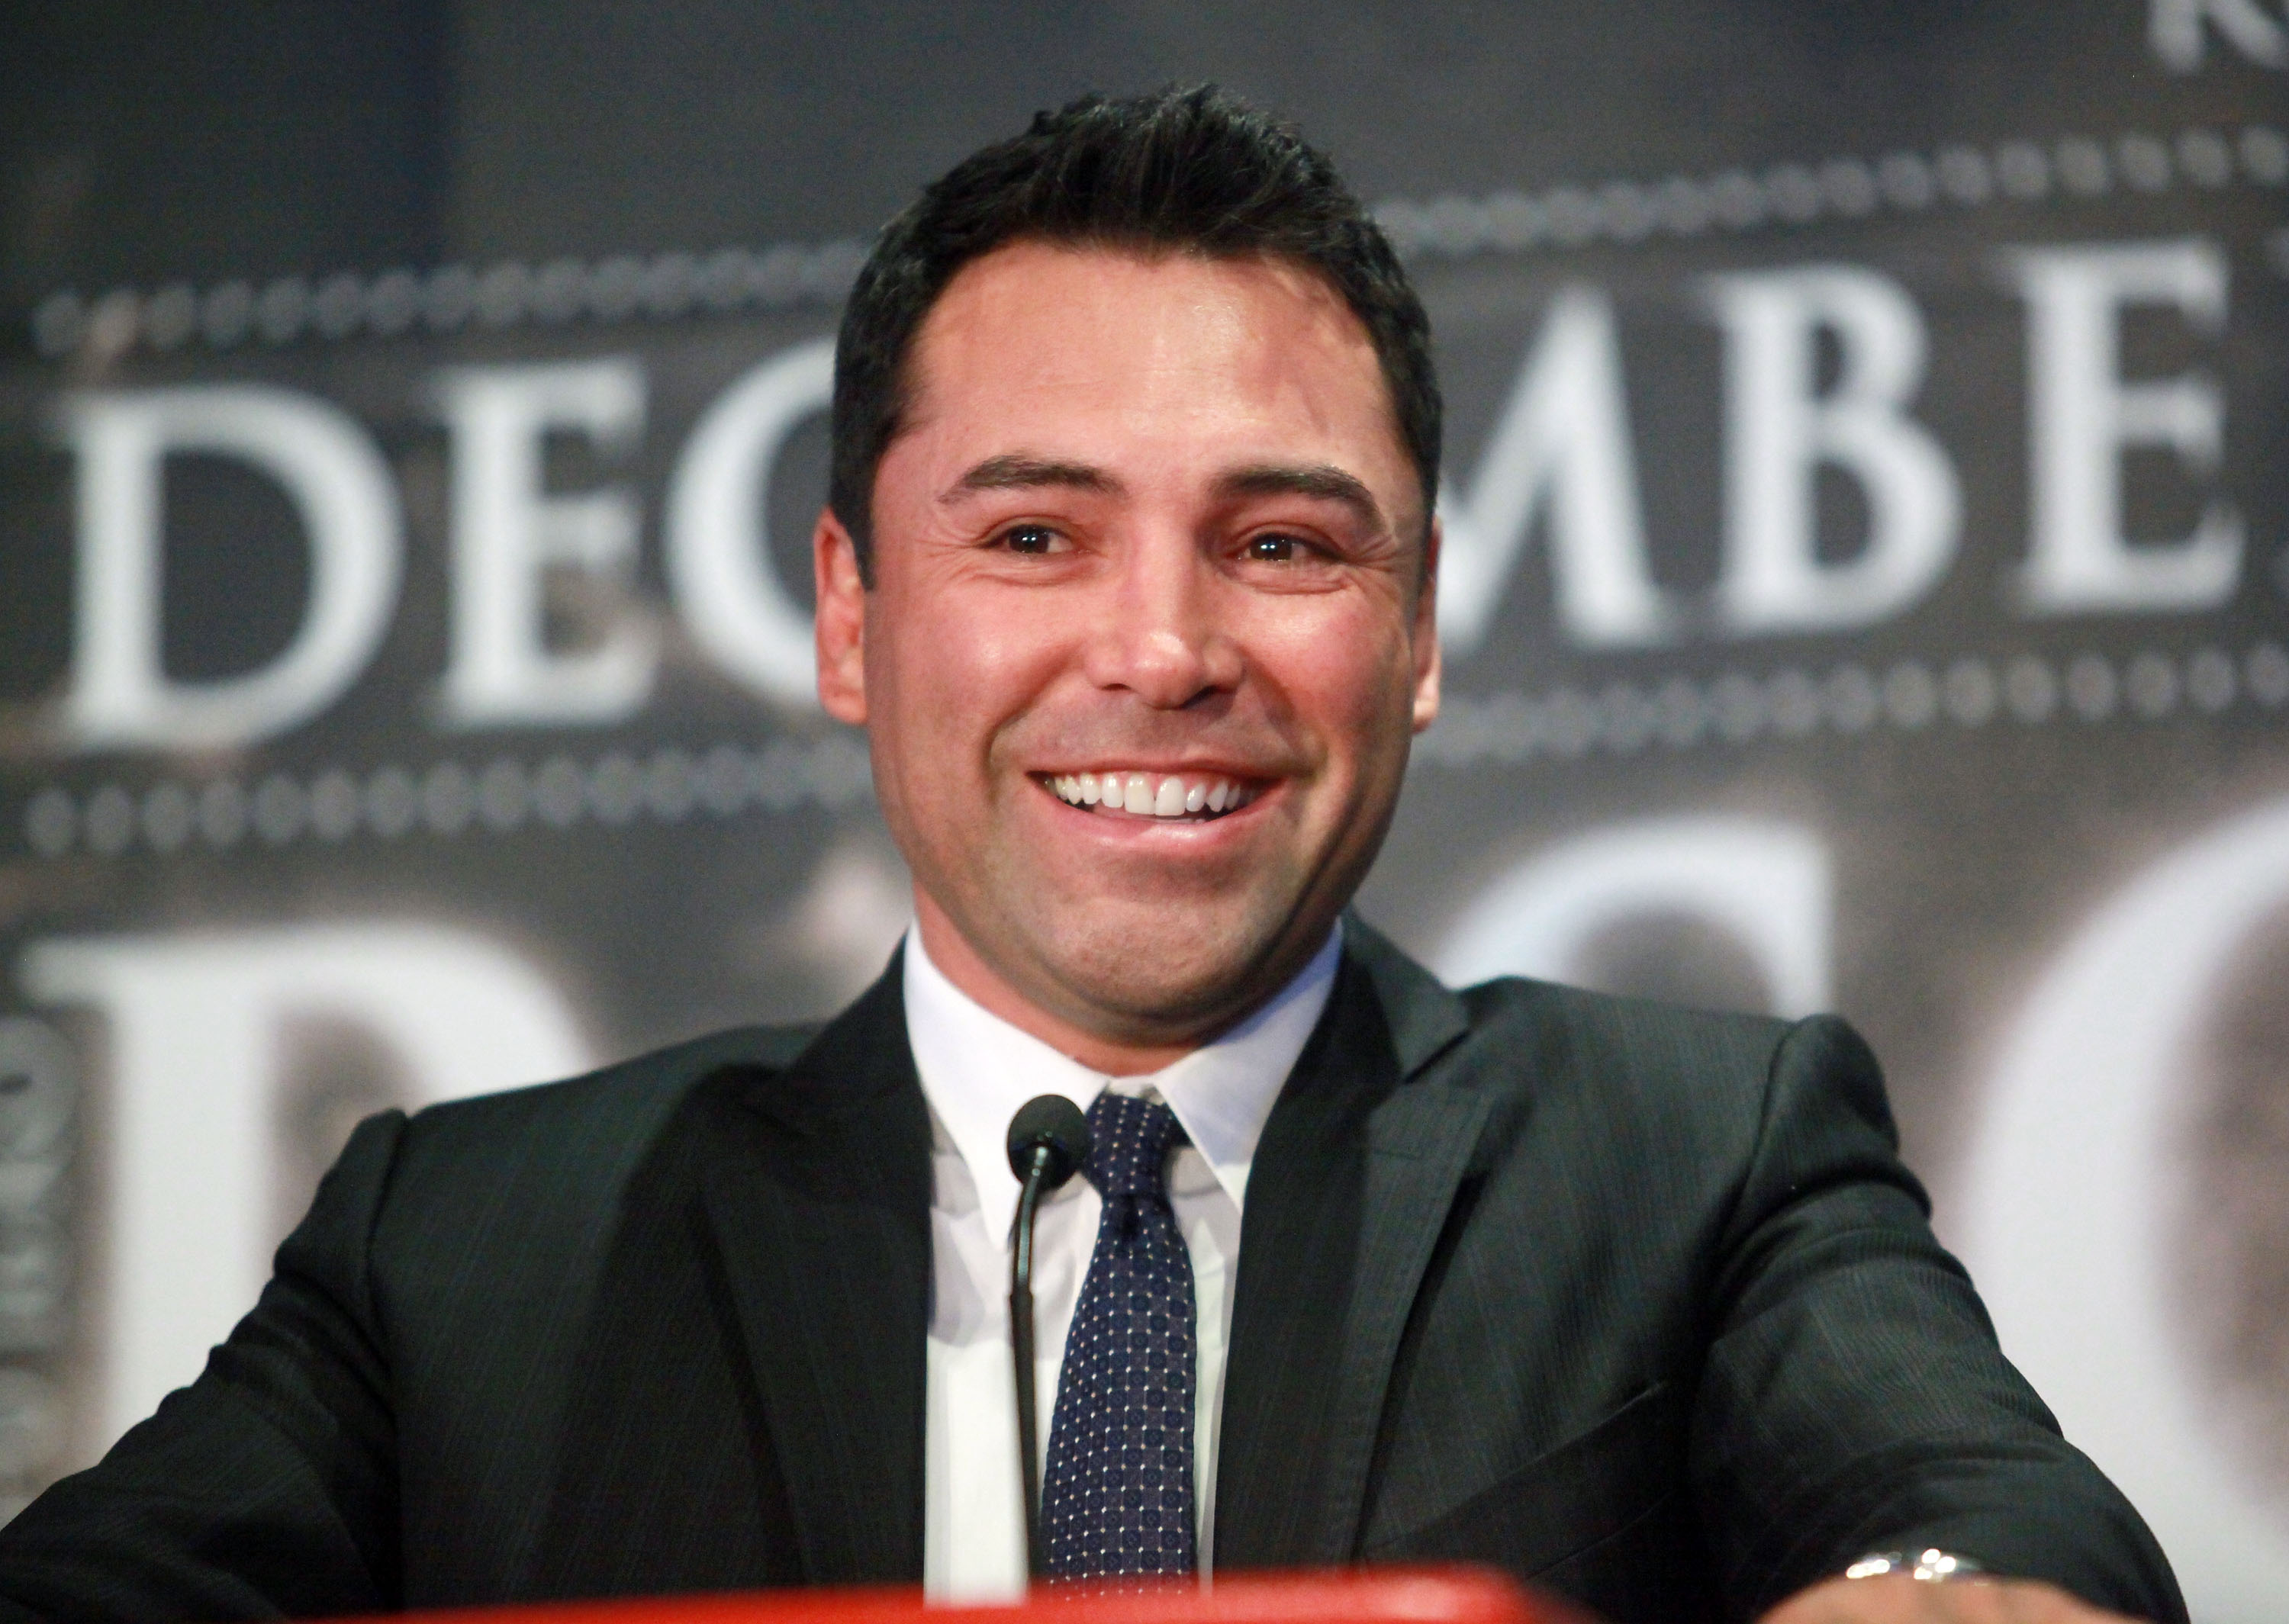 Oscar de la Hoya earned a  million dollar salary, leaving the net worth at 200 million in 2017